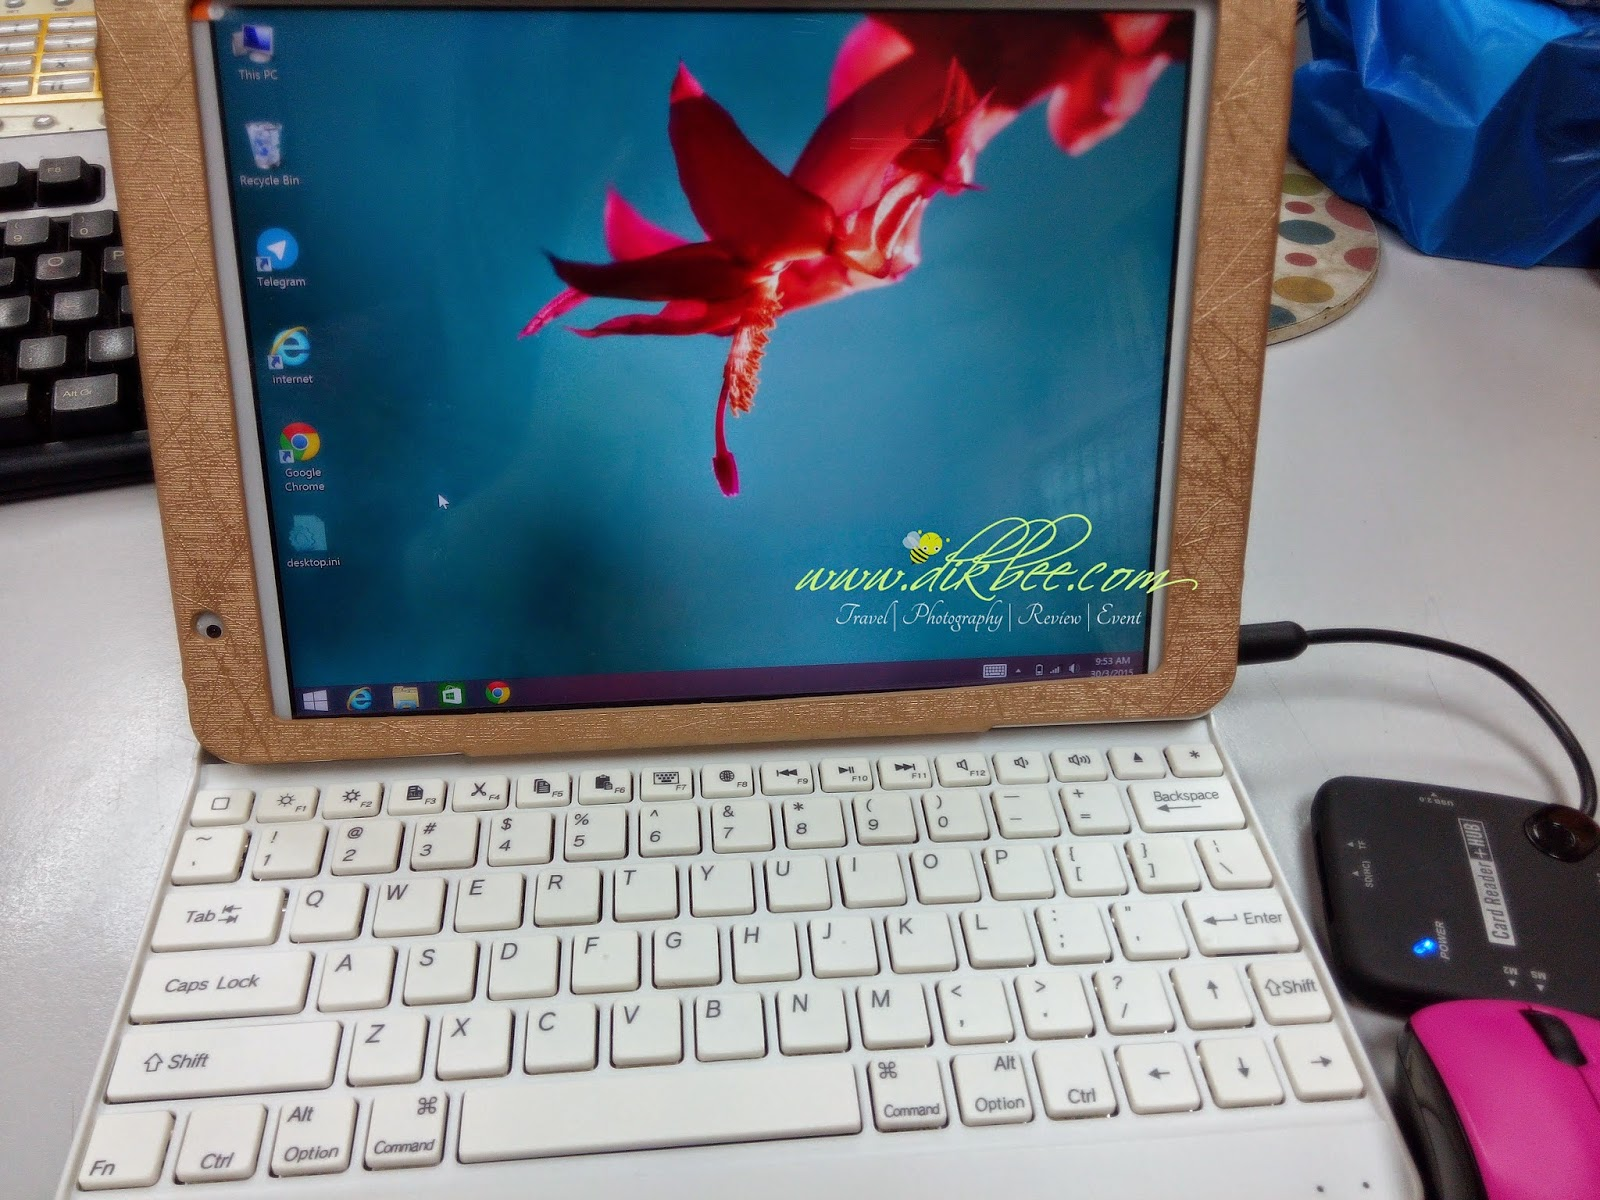 Review Tablet Dual Boot - Android 4.4 Dan Windows 8.1